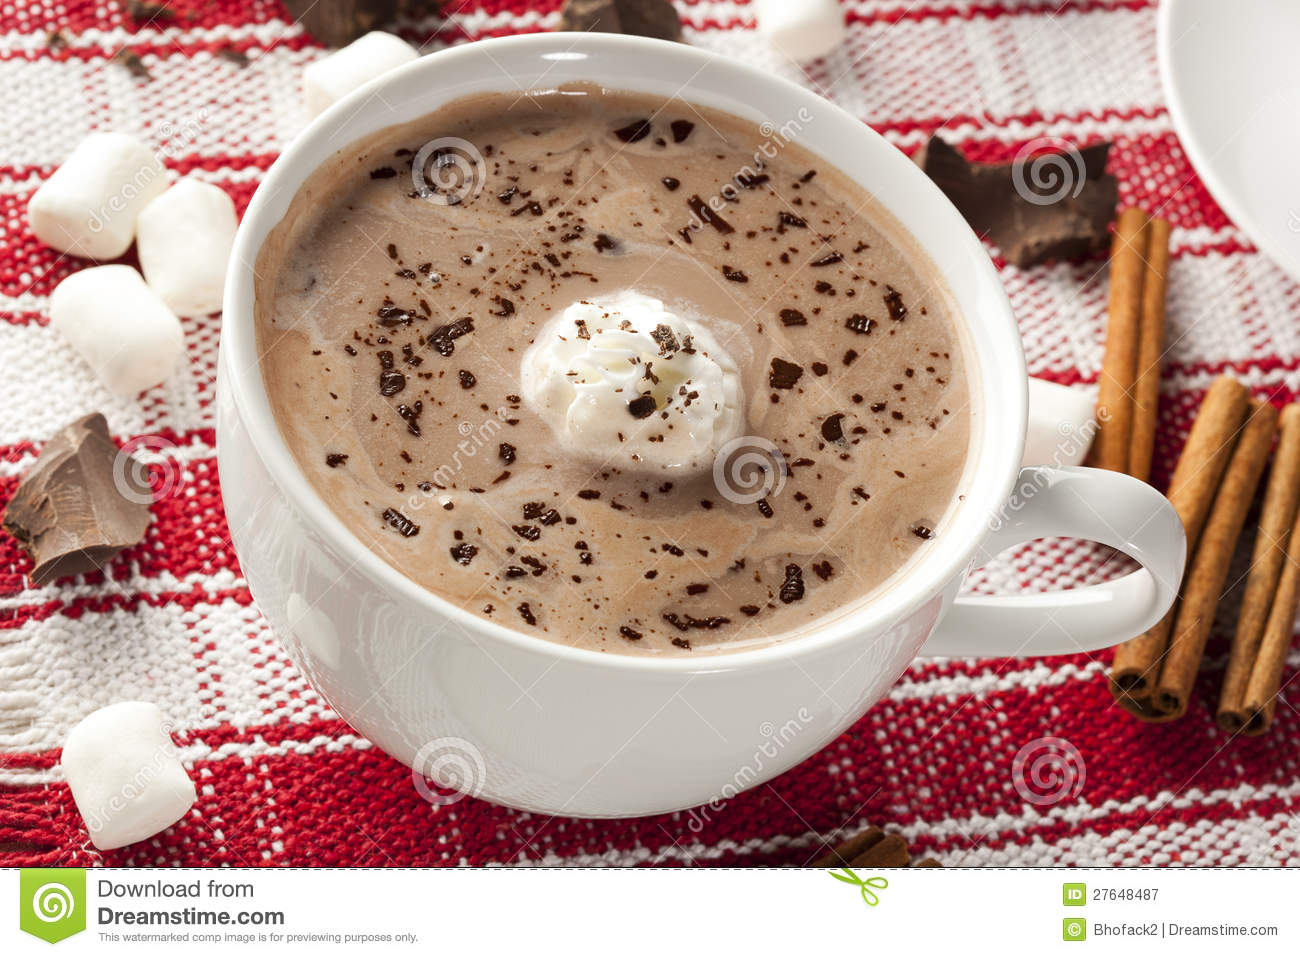 Gourmet Hot Chocolate Royalty Free Stock Photography - Image: 27648487